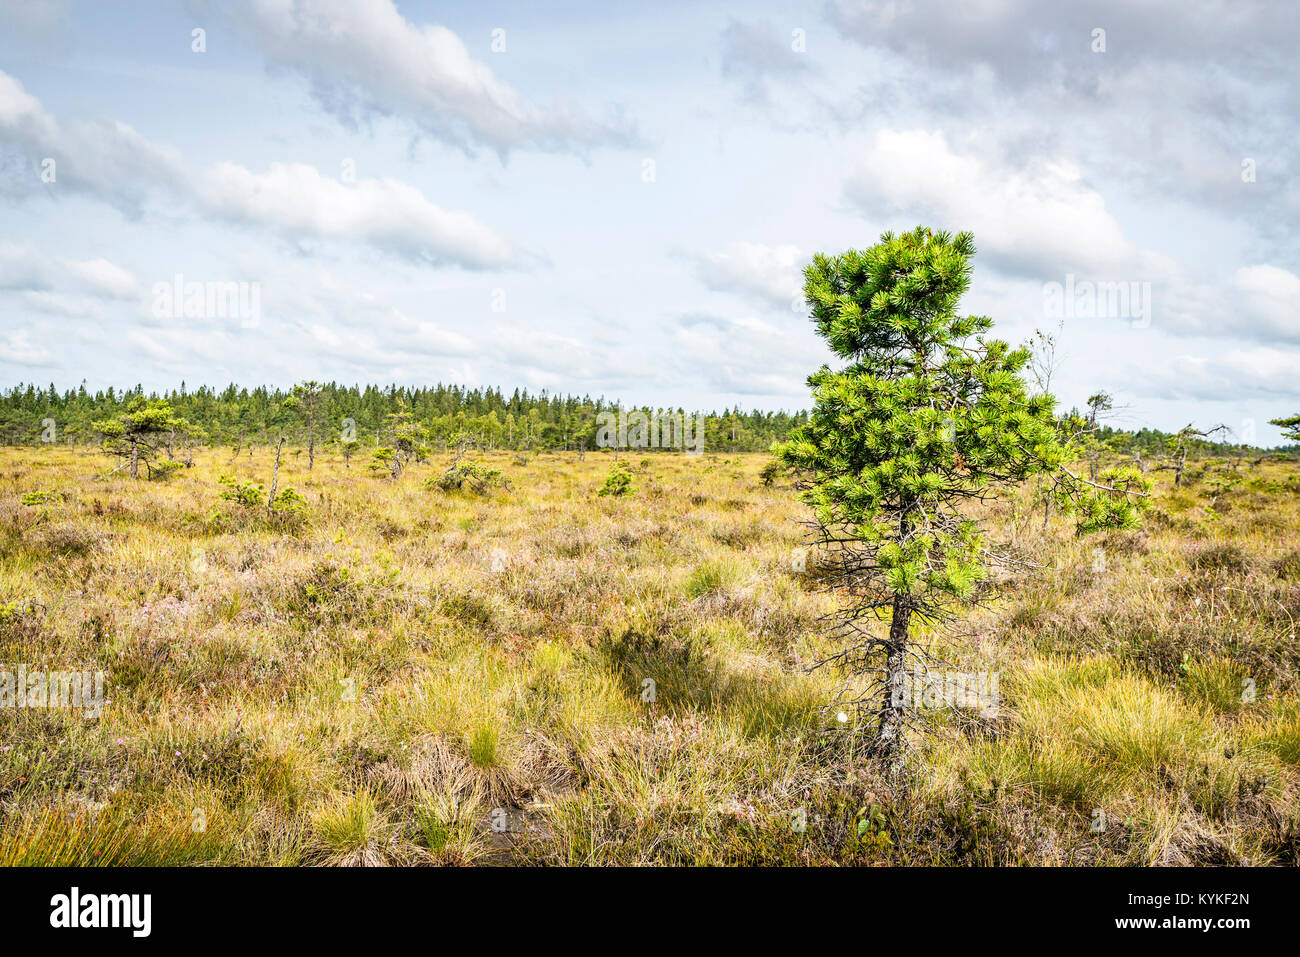 Wilderness landscape with a single pine tree on a prairie field with tall grass in the summer - Stock Image